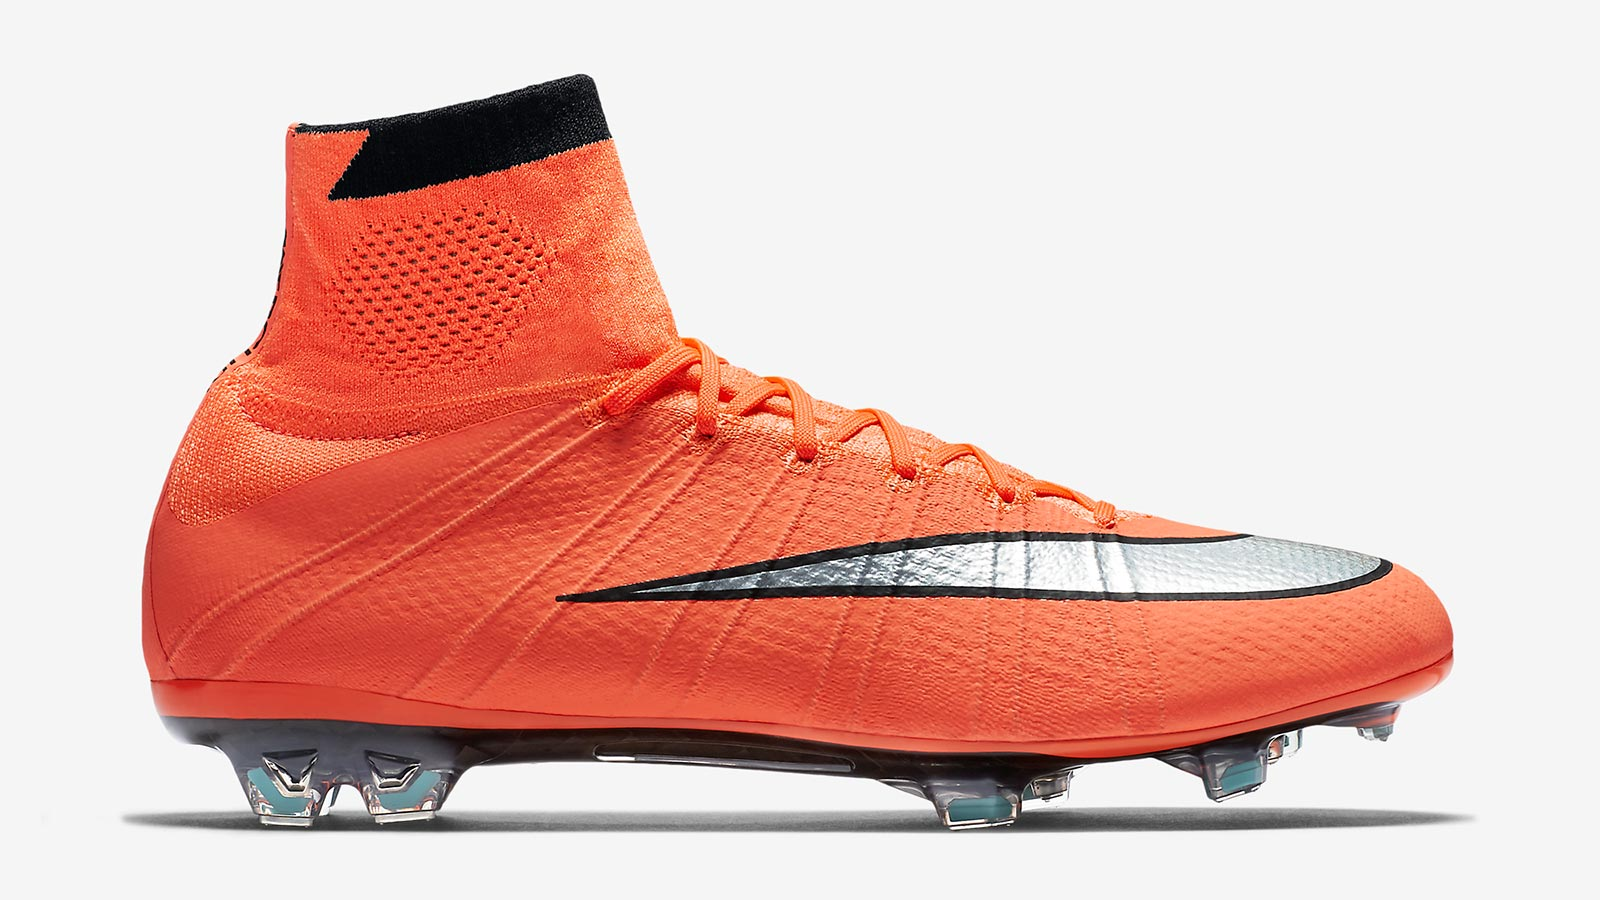 Hg Fly The Full History Of The Nike Mercurial Superfly Iv - Footy